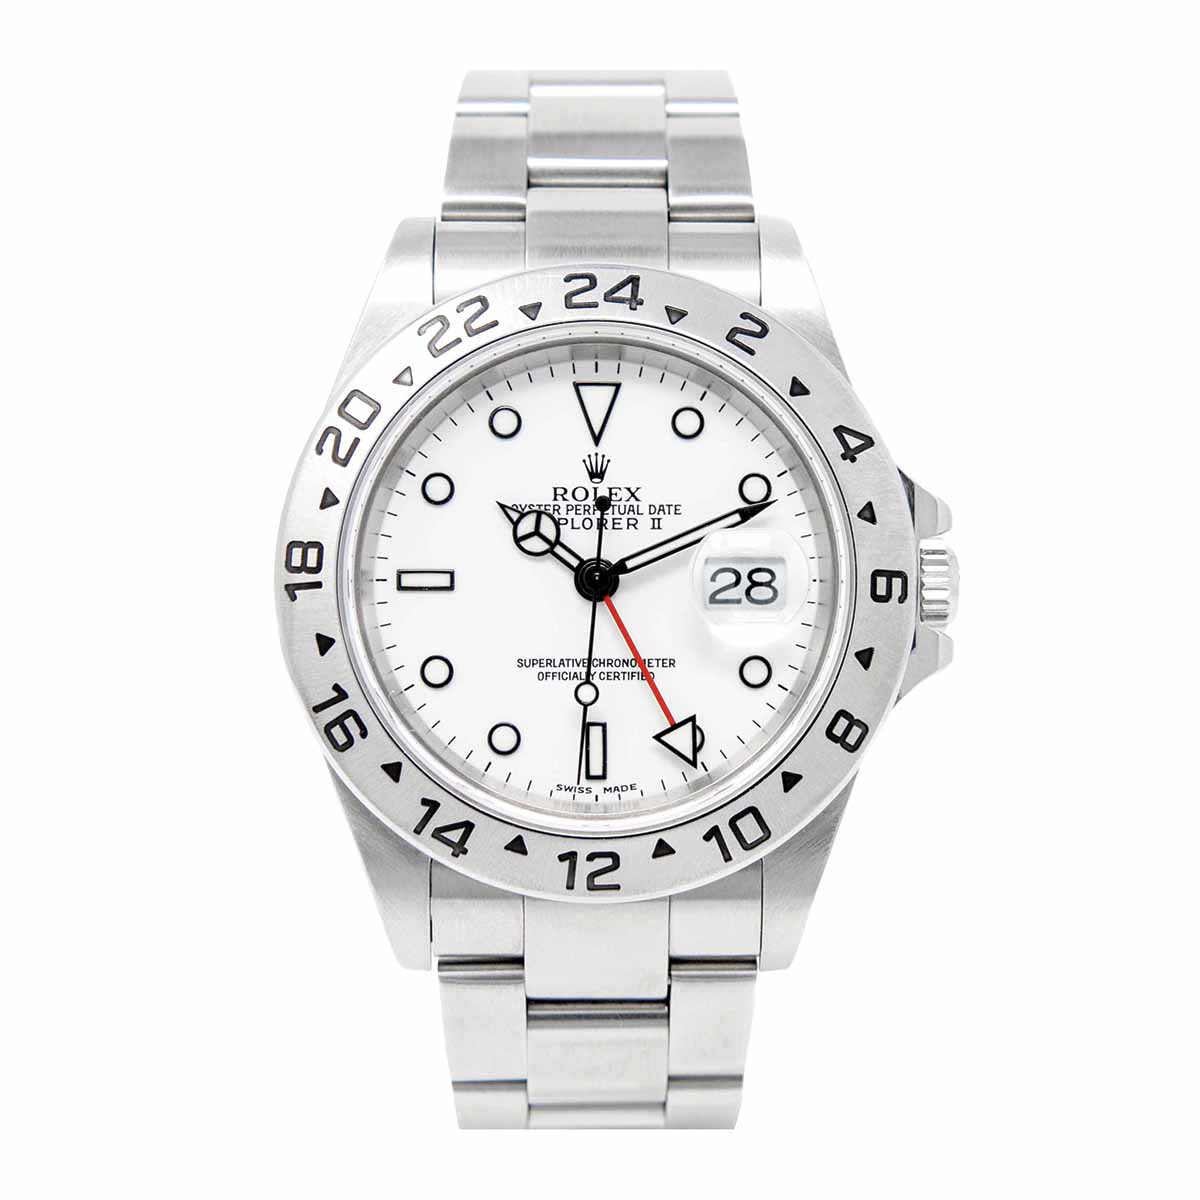 Pre-Owned Man's Rolex Explorer II